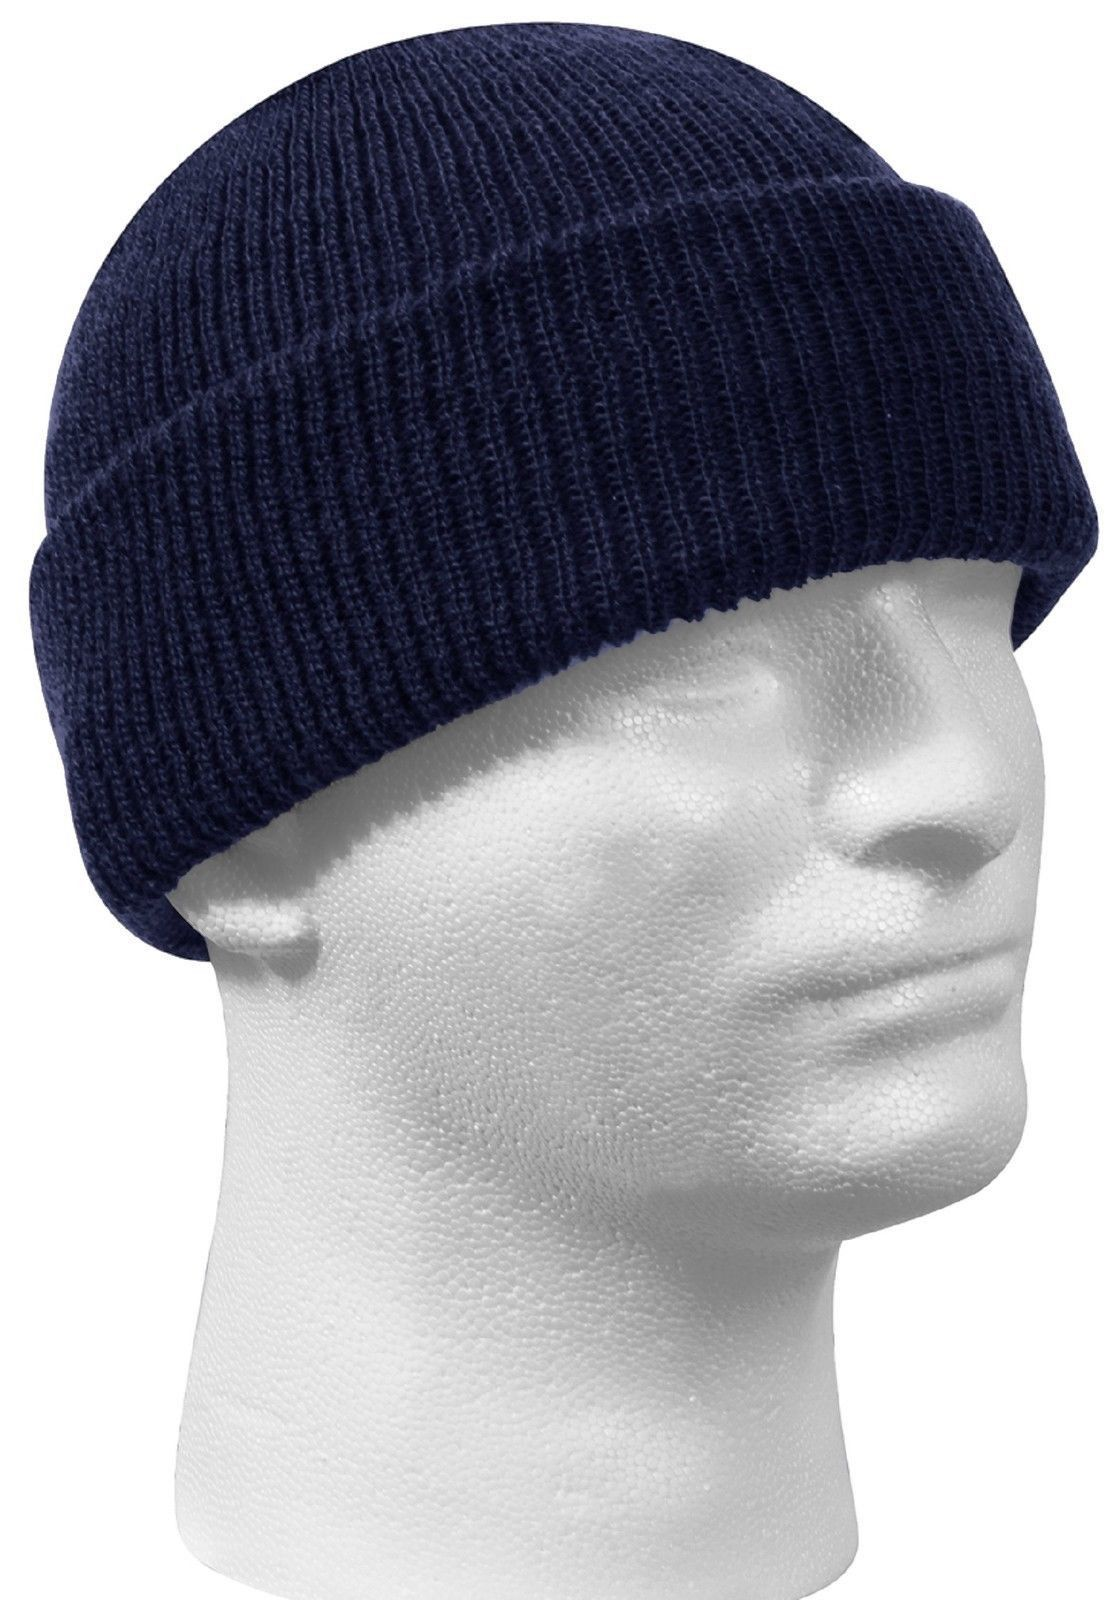 daa3ca779ff611 Genuine Military 100% Wool Watch Cap GSA Compliant Beanie Cap USA MADE